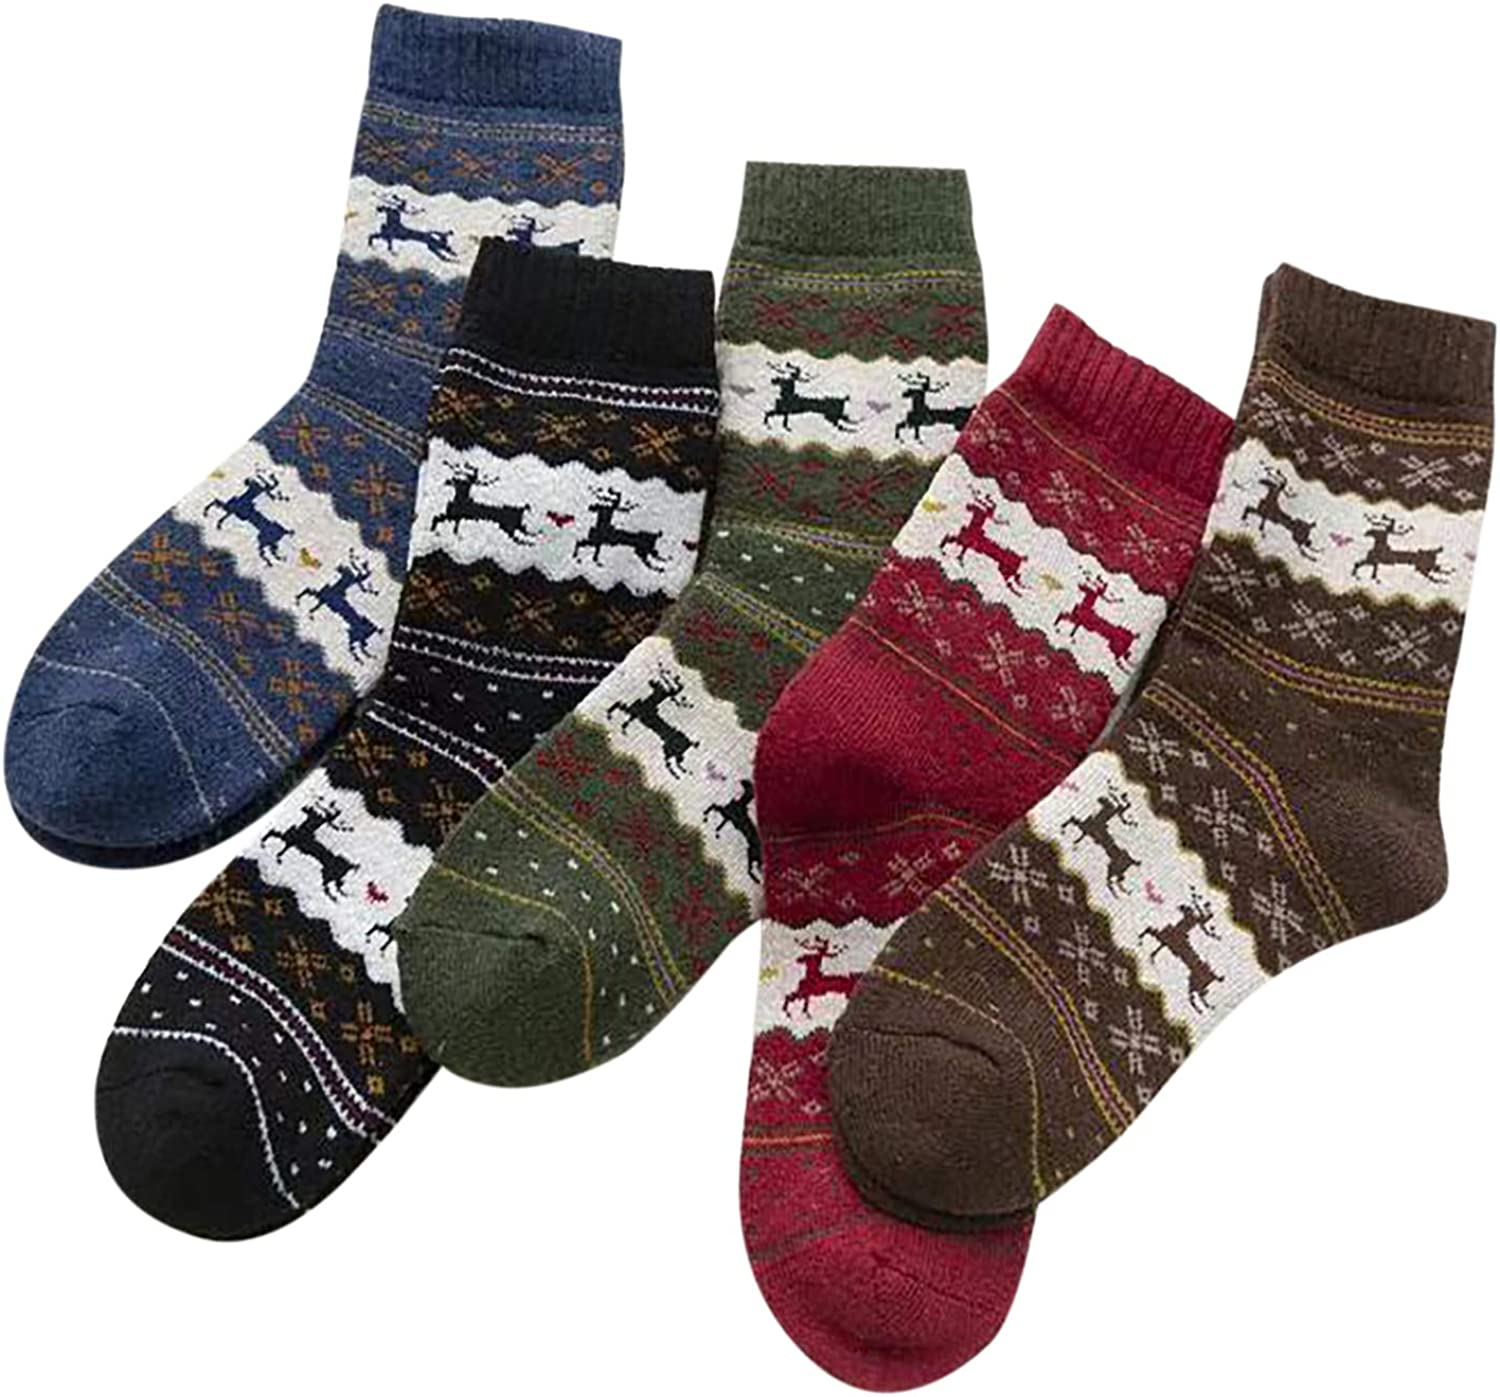 Mens Christmas Gift For Her Thermal Warm Soft Ladies Gift for Him Unisex Socks Womens Eco Friendly Winter Socks Bed Socks Cosy